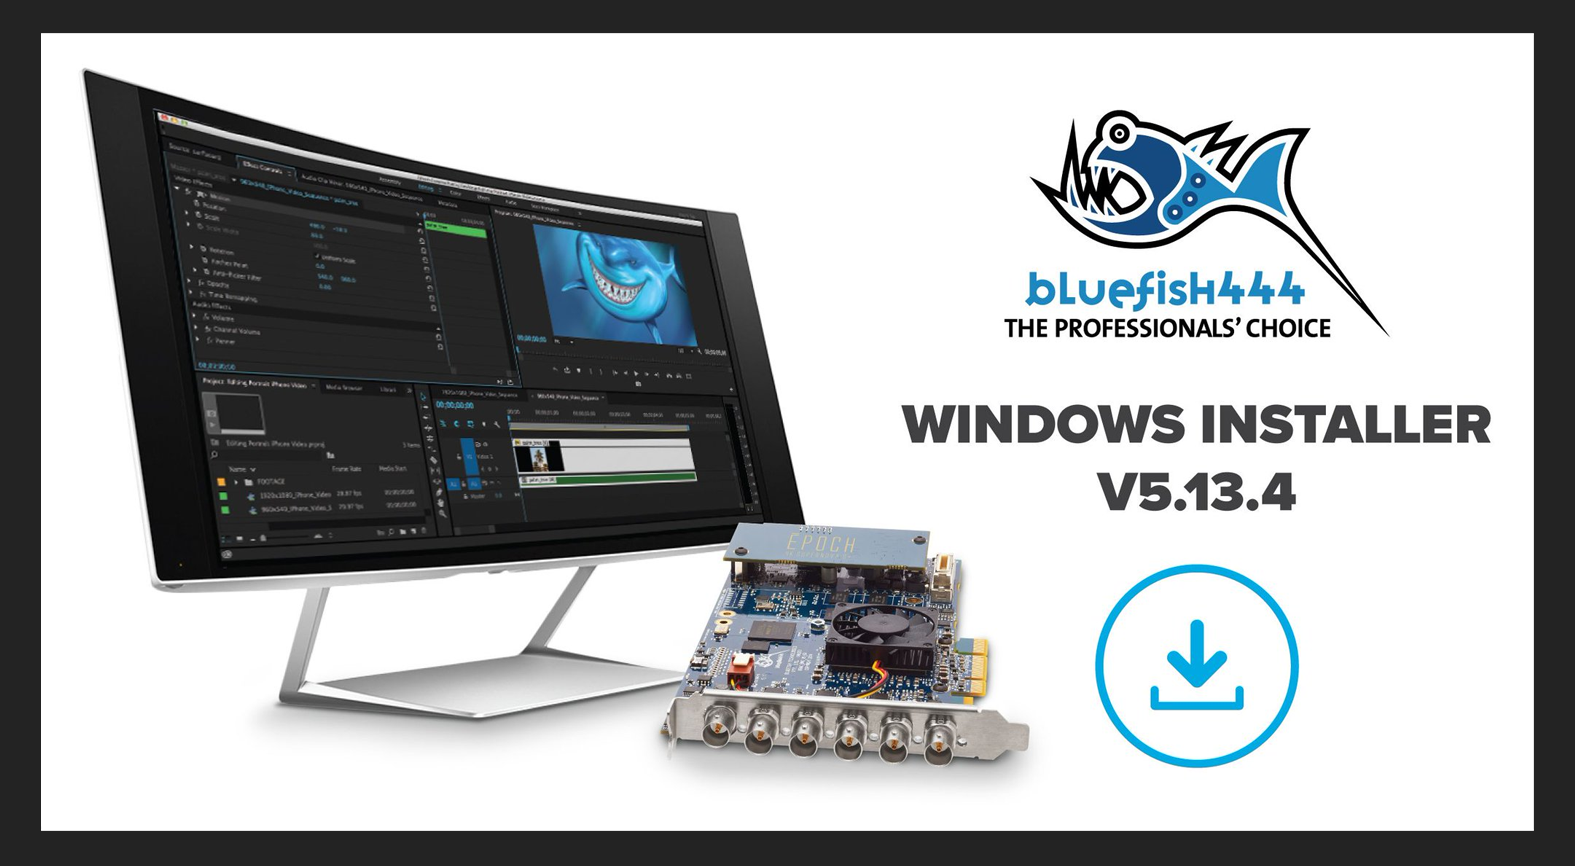 Bluefish444_Windows Installer For Epoch Range